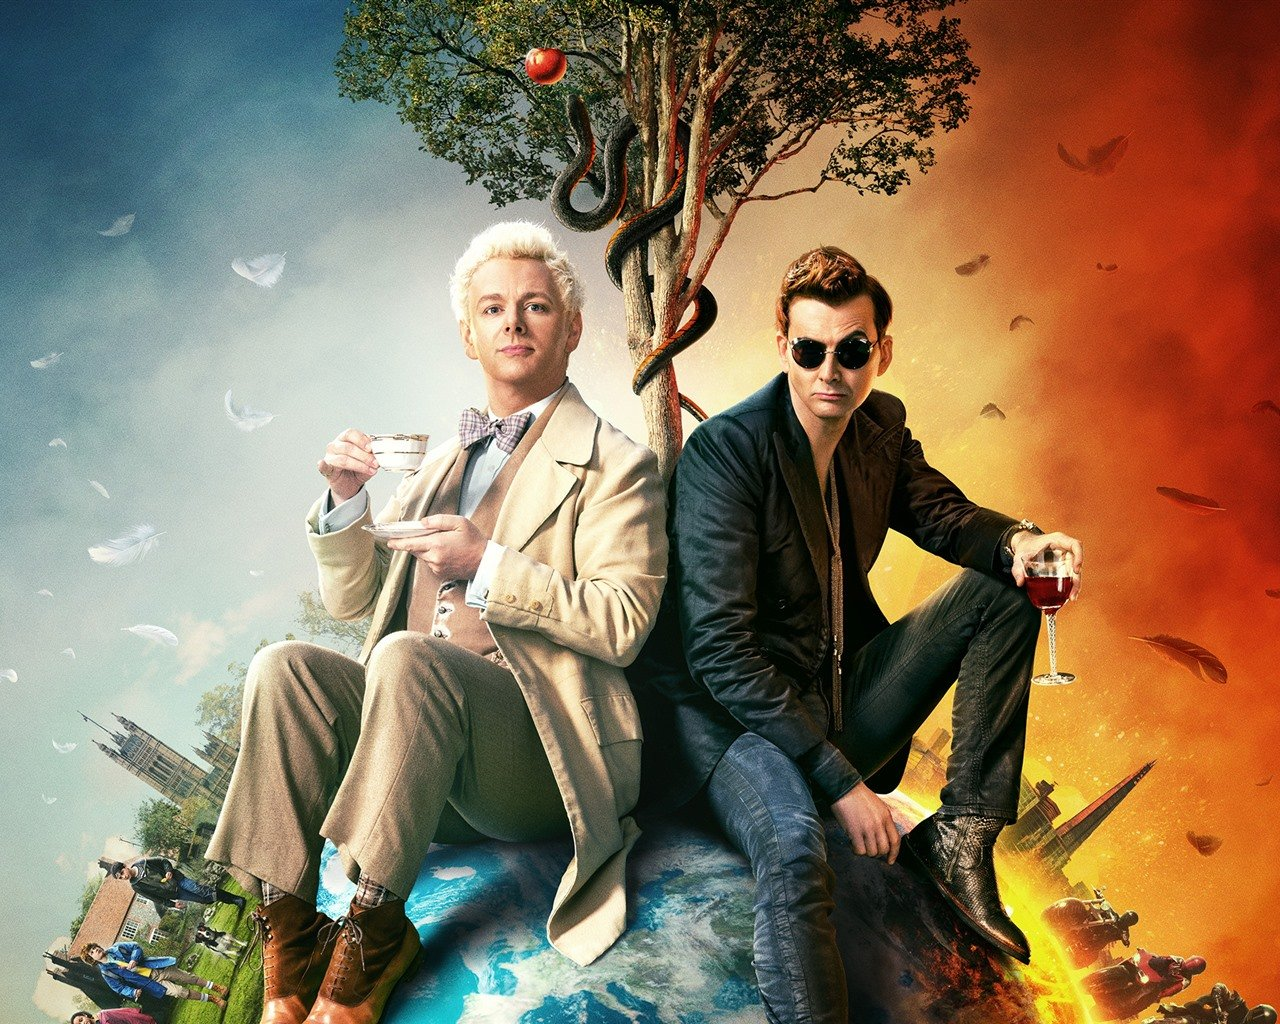 Wallpaper Good Omens 1920x1440 HD Picture Image 1280x1024